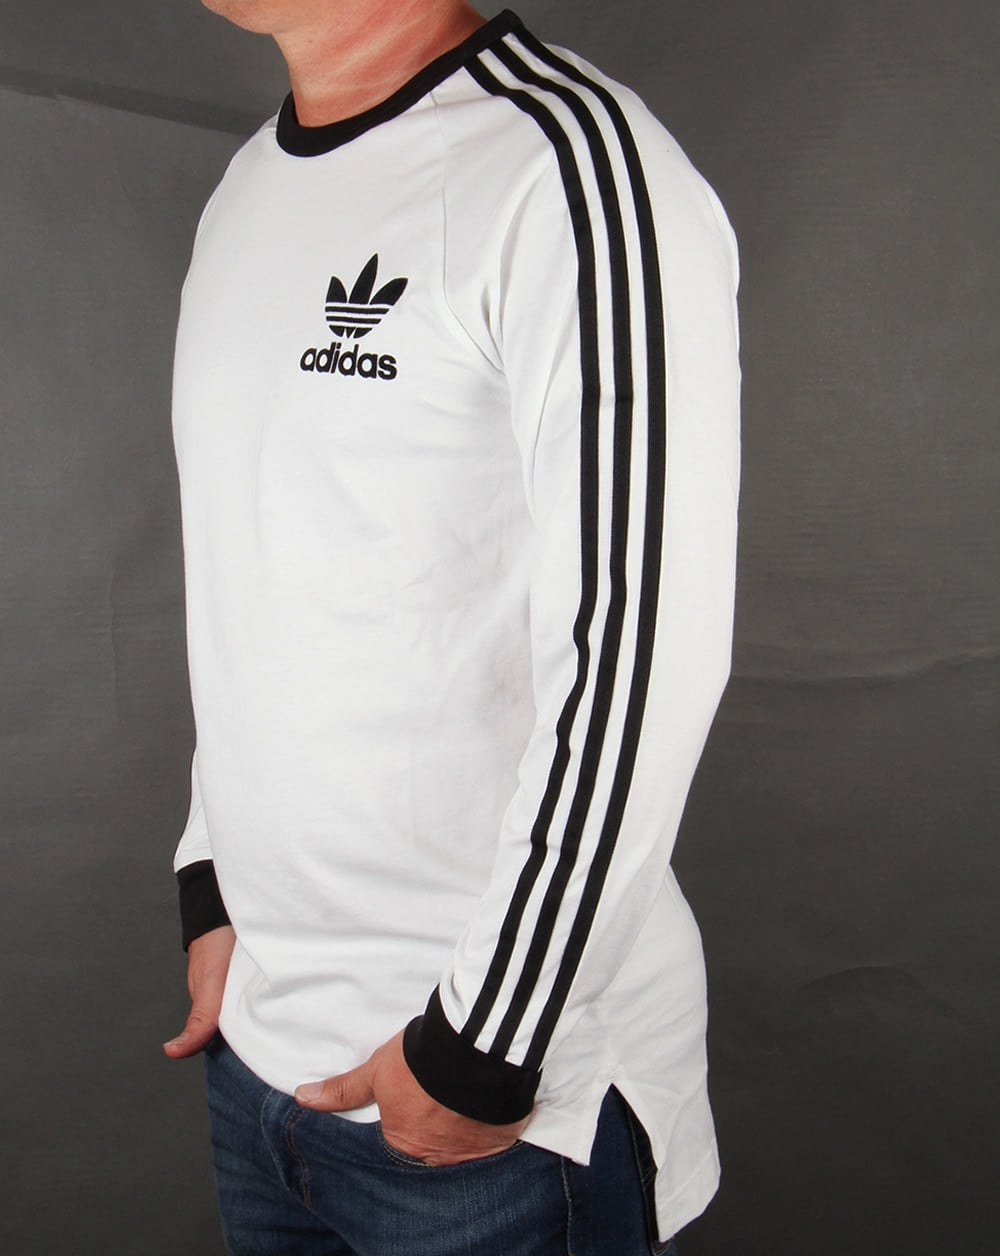 Black t shirt with white stripes - Adidas Originals 3 Stripes Oversized Long Sleeve T Shirt White Black